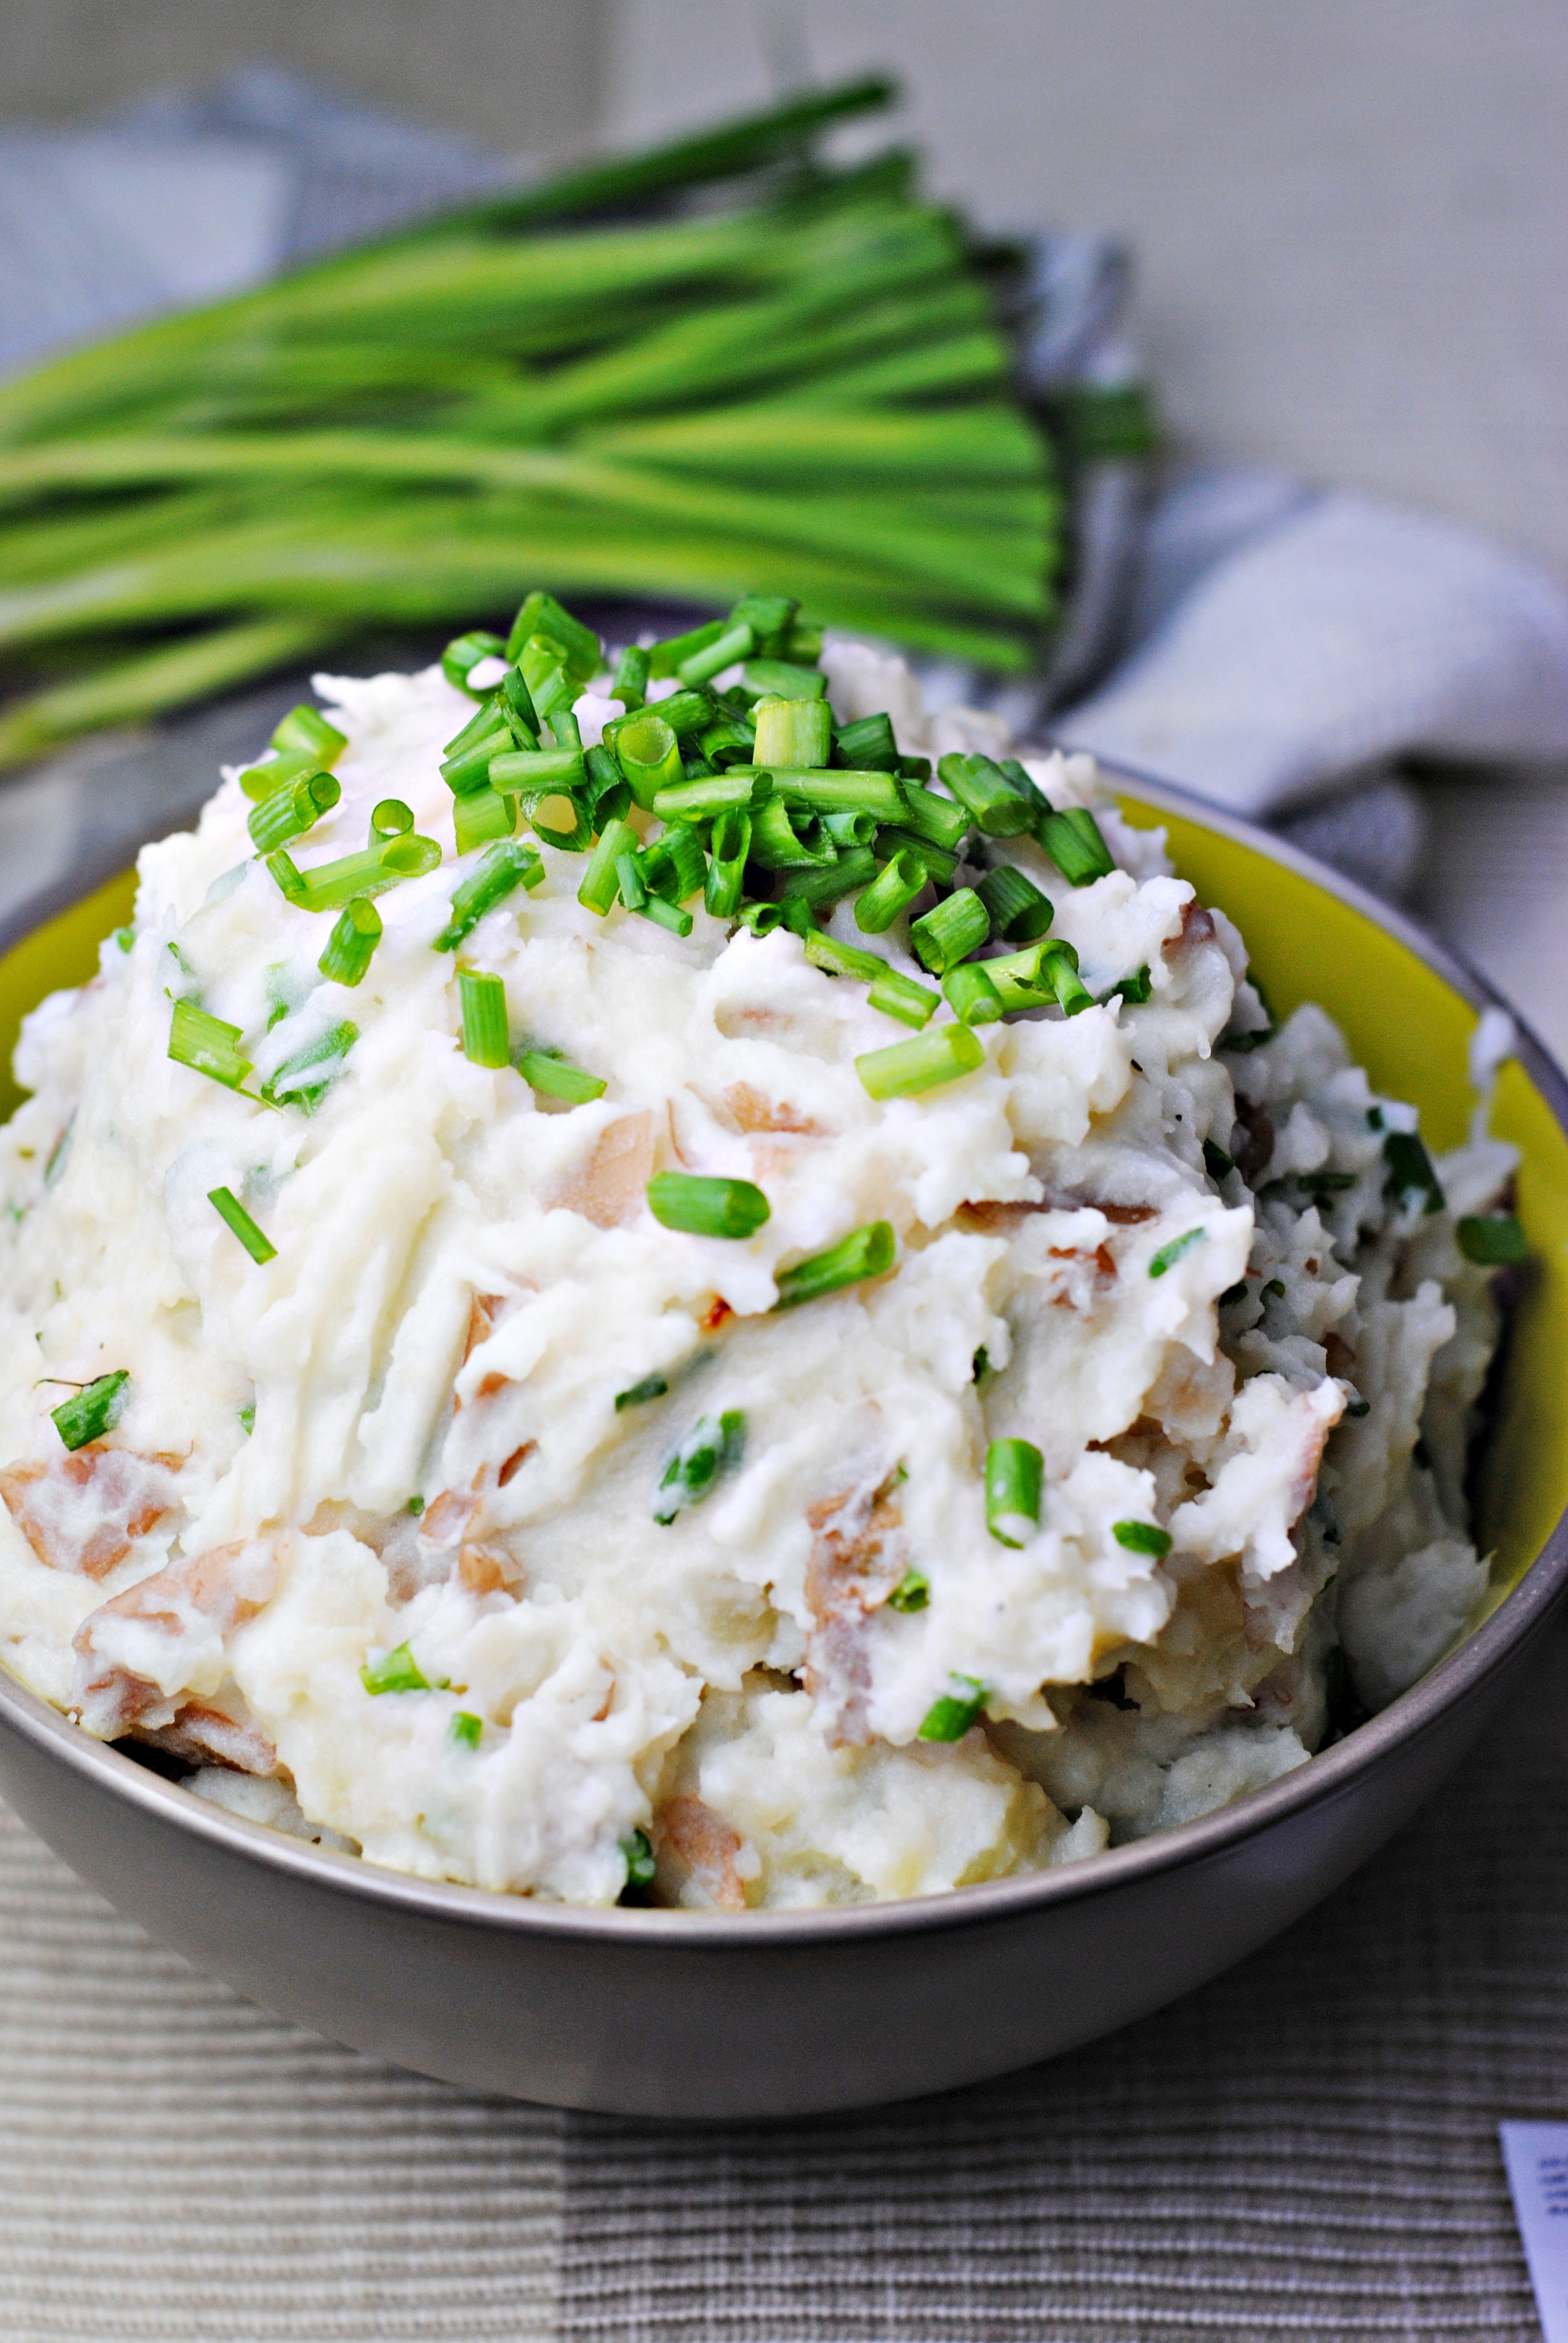 Sour Cream & Scallion Mashed Potatoes